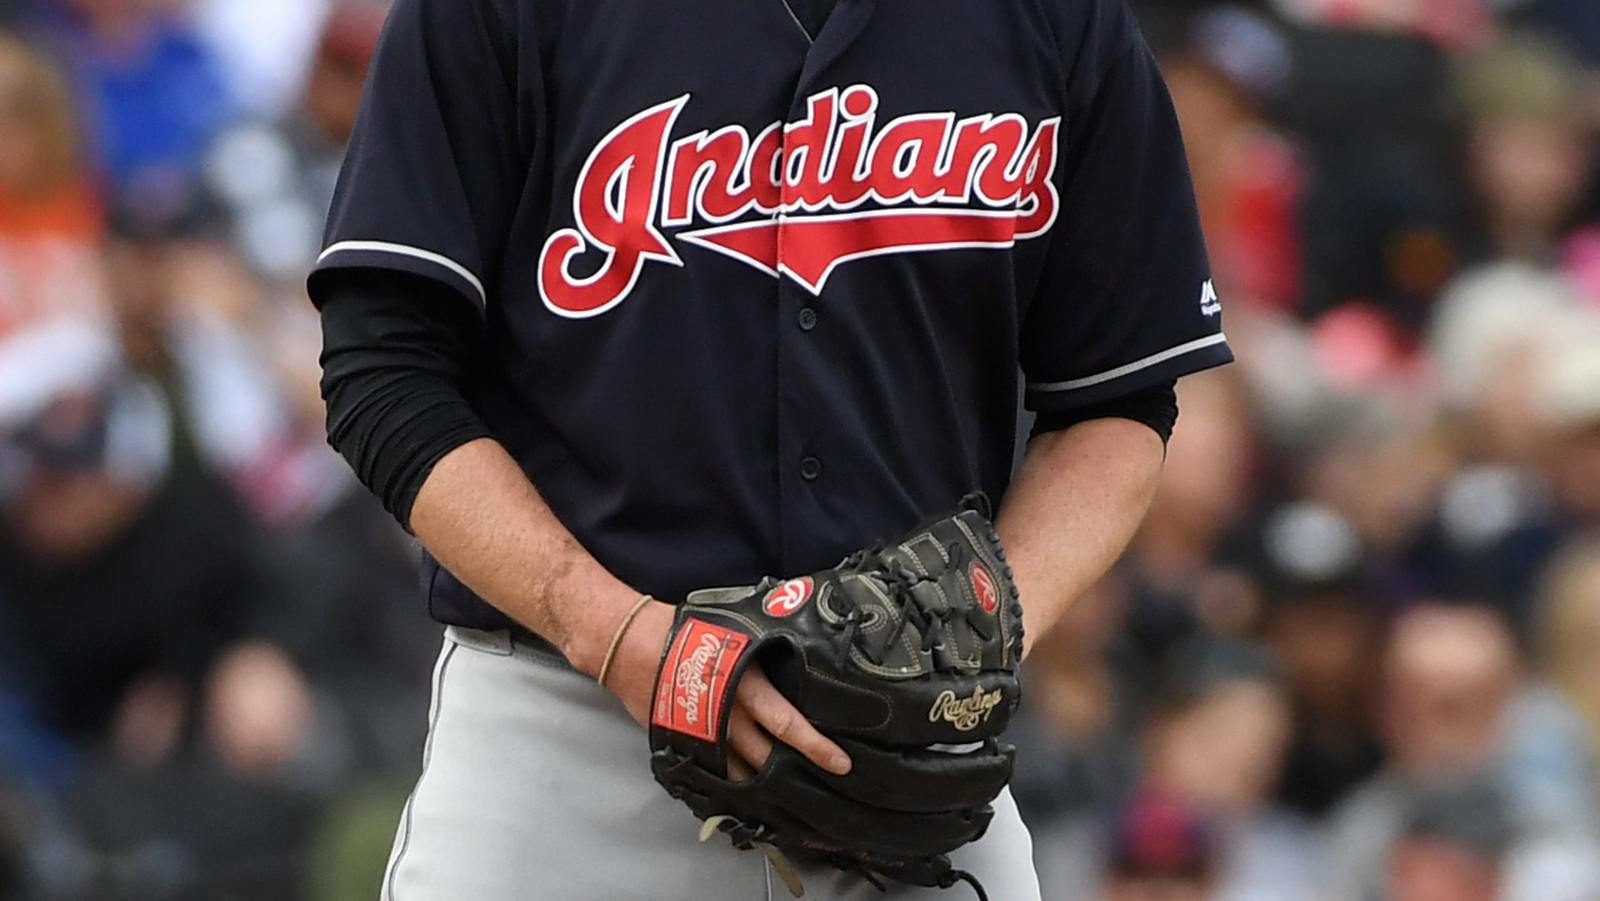 Cleveland Indians Manager Says It S Time To Change The Team Name